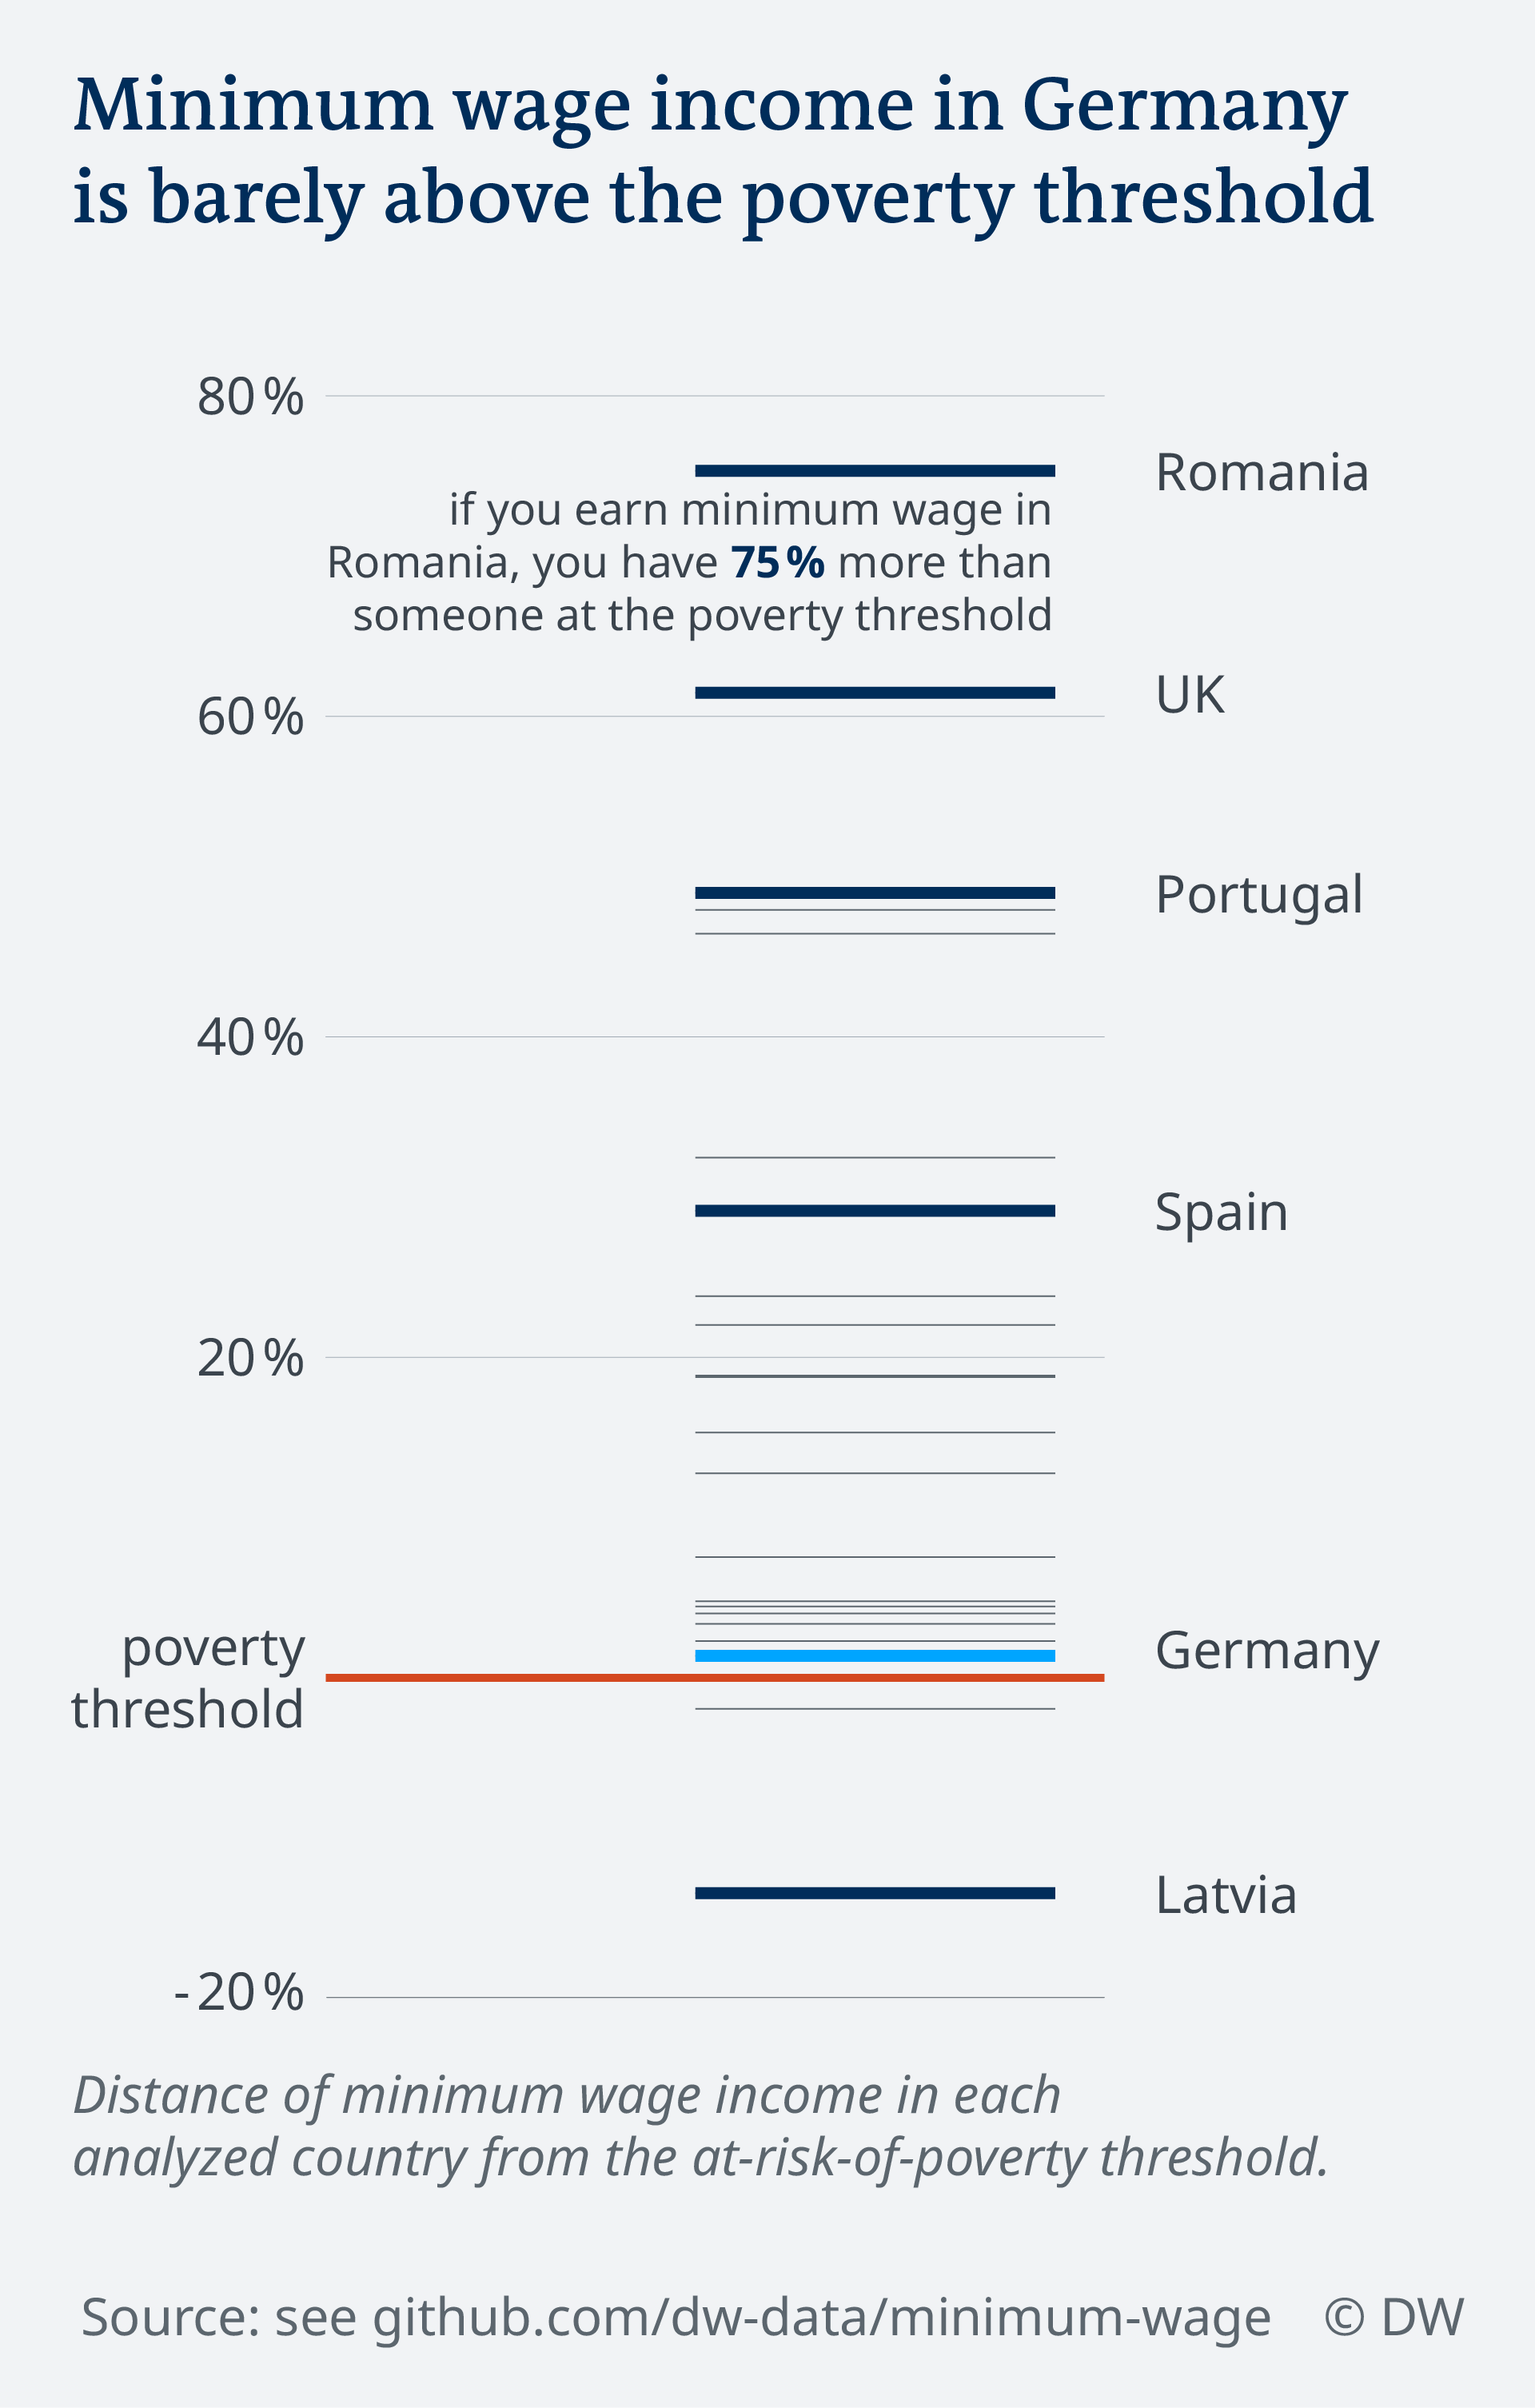 Data visualization minimum wage in Europe vs poverty threshold